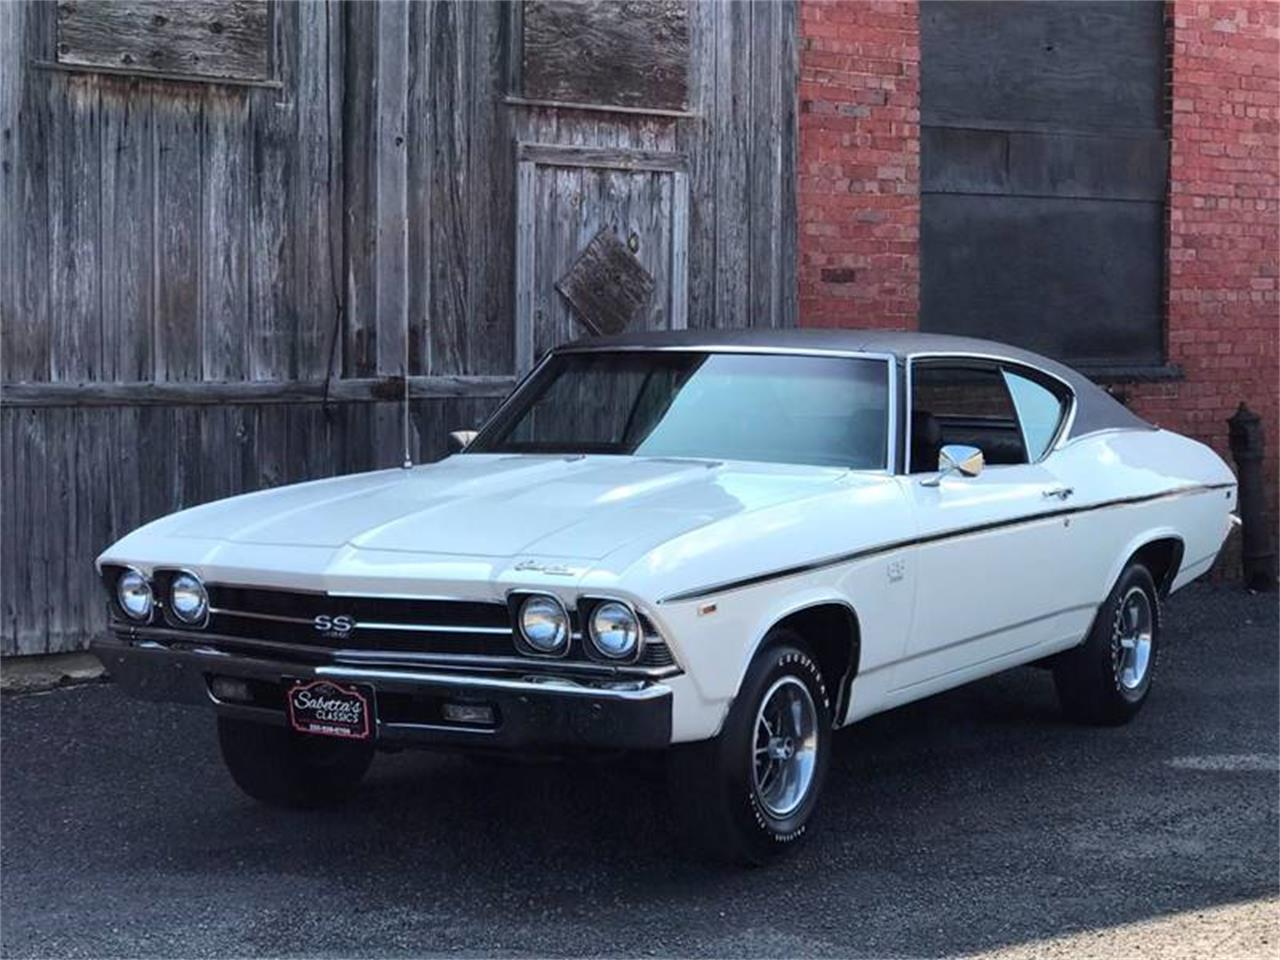 1969 Chevrolet Chevelle for sale in Orville, OH – photo 2